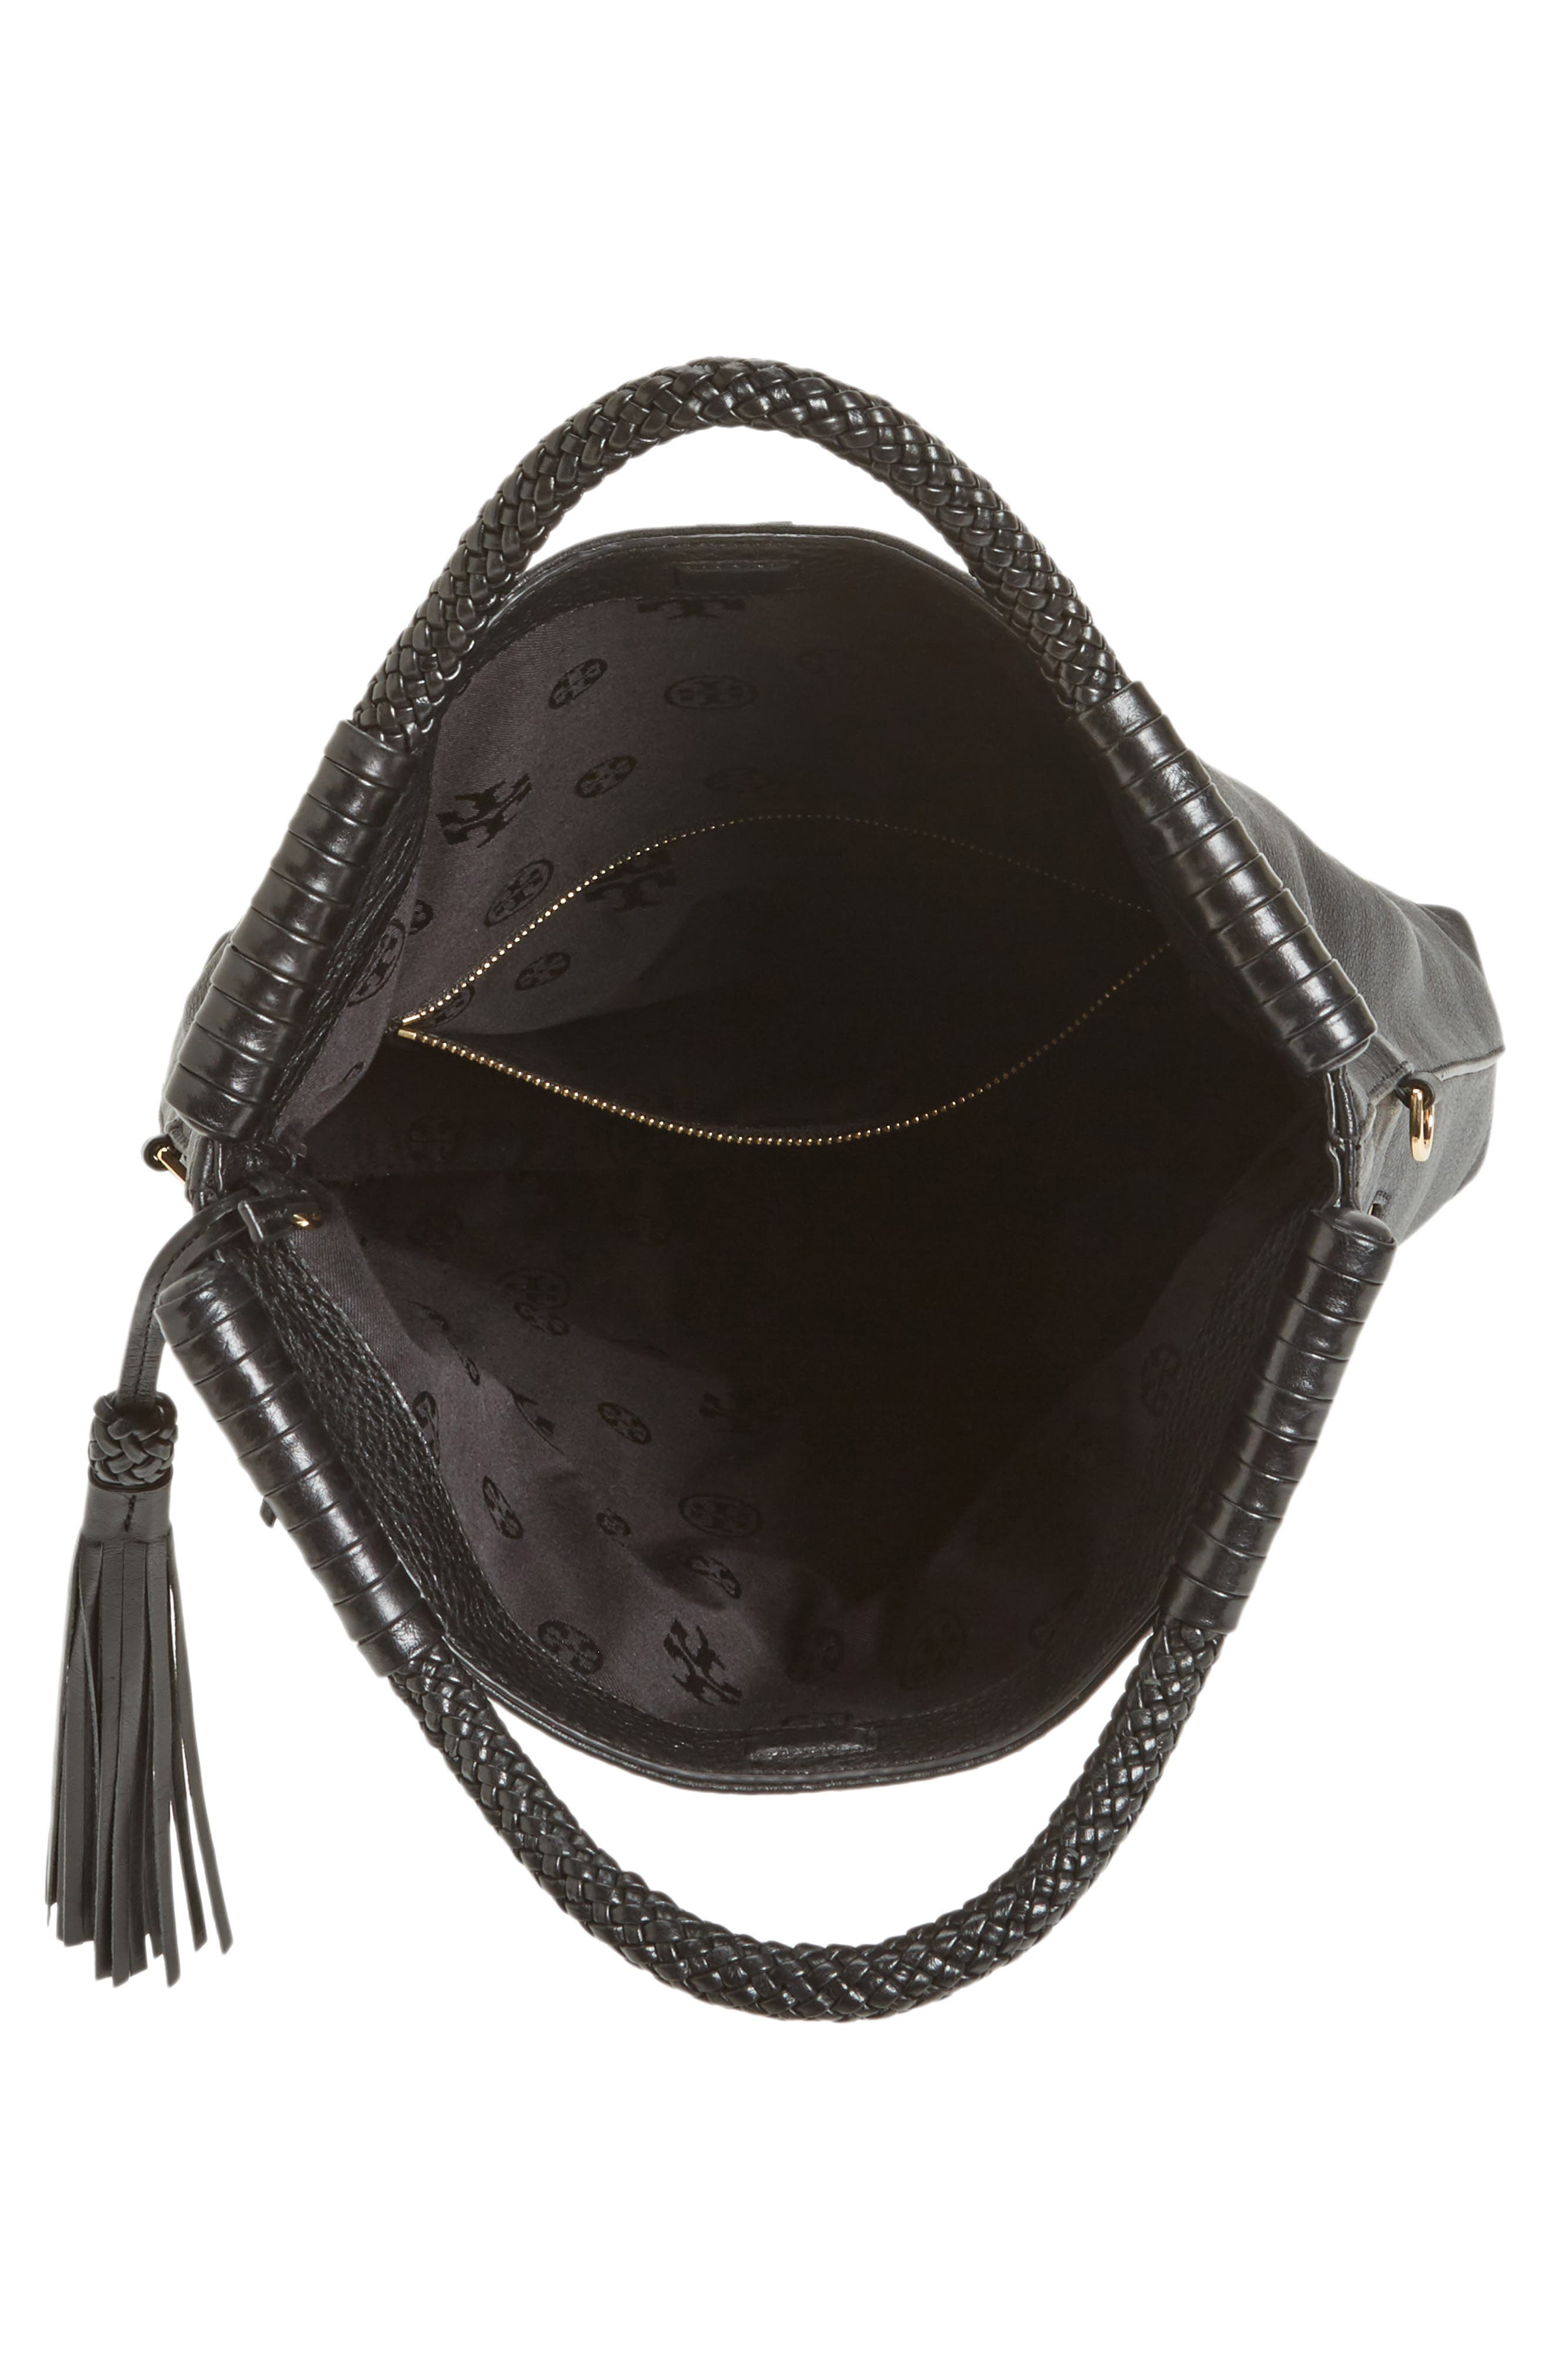 Convertible Leather Crossbody Bag,                             Alternate thumbnail 4, color,                             001